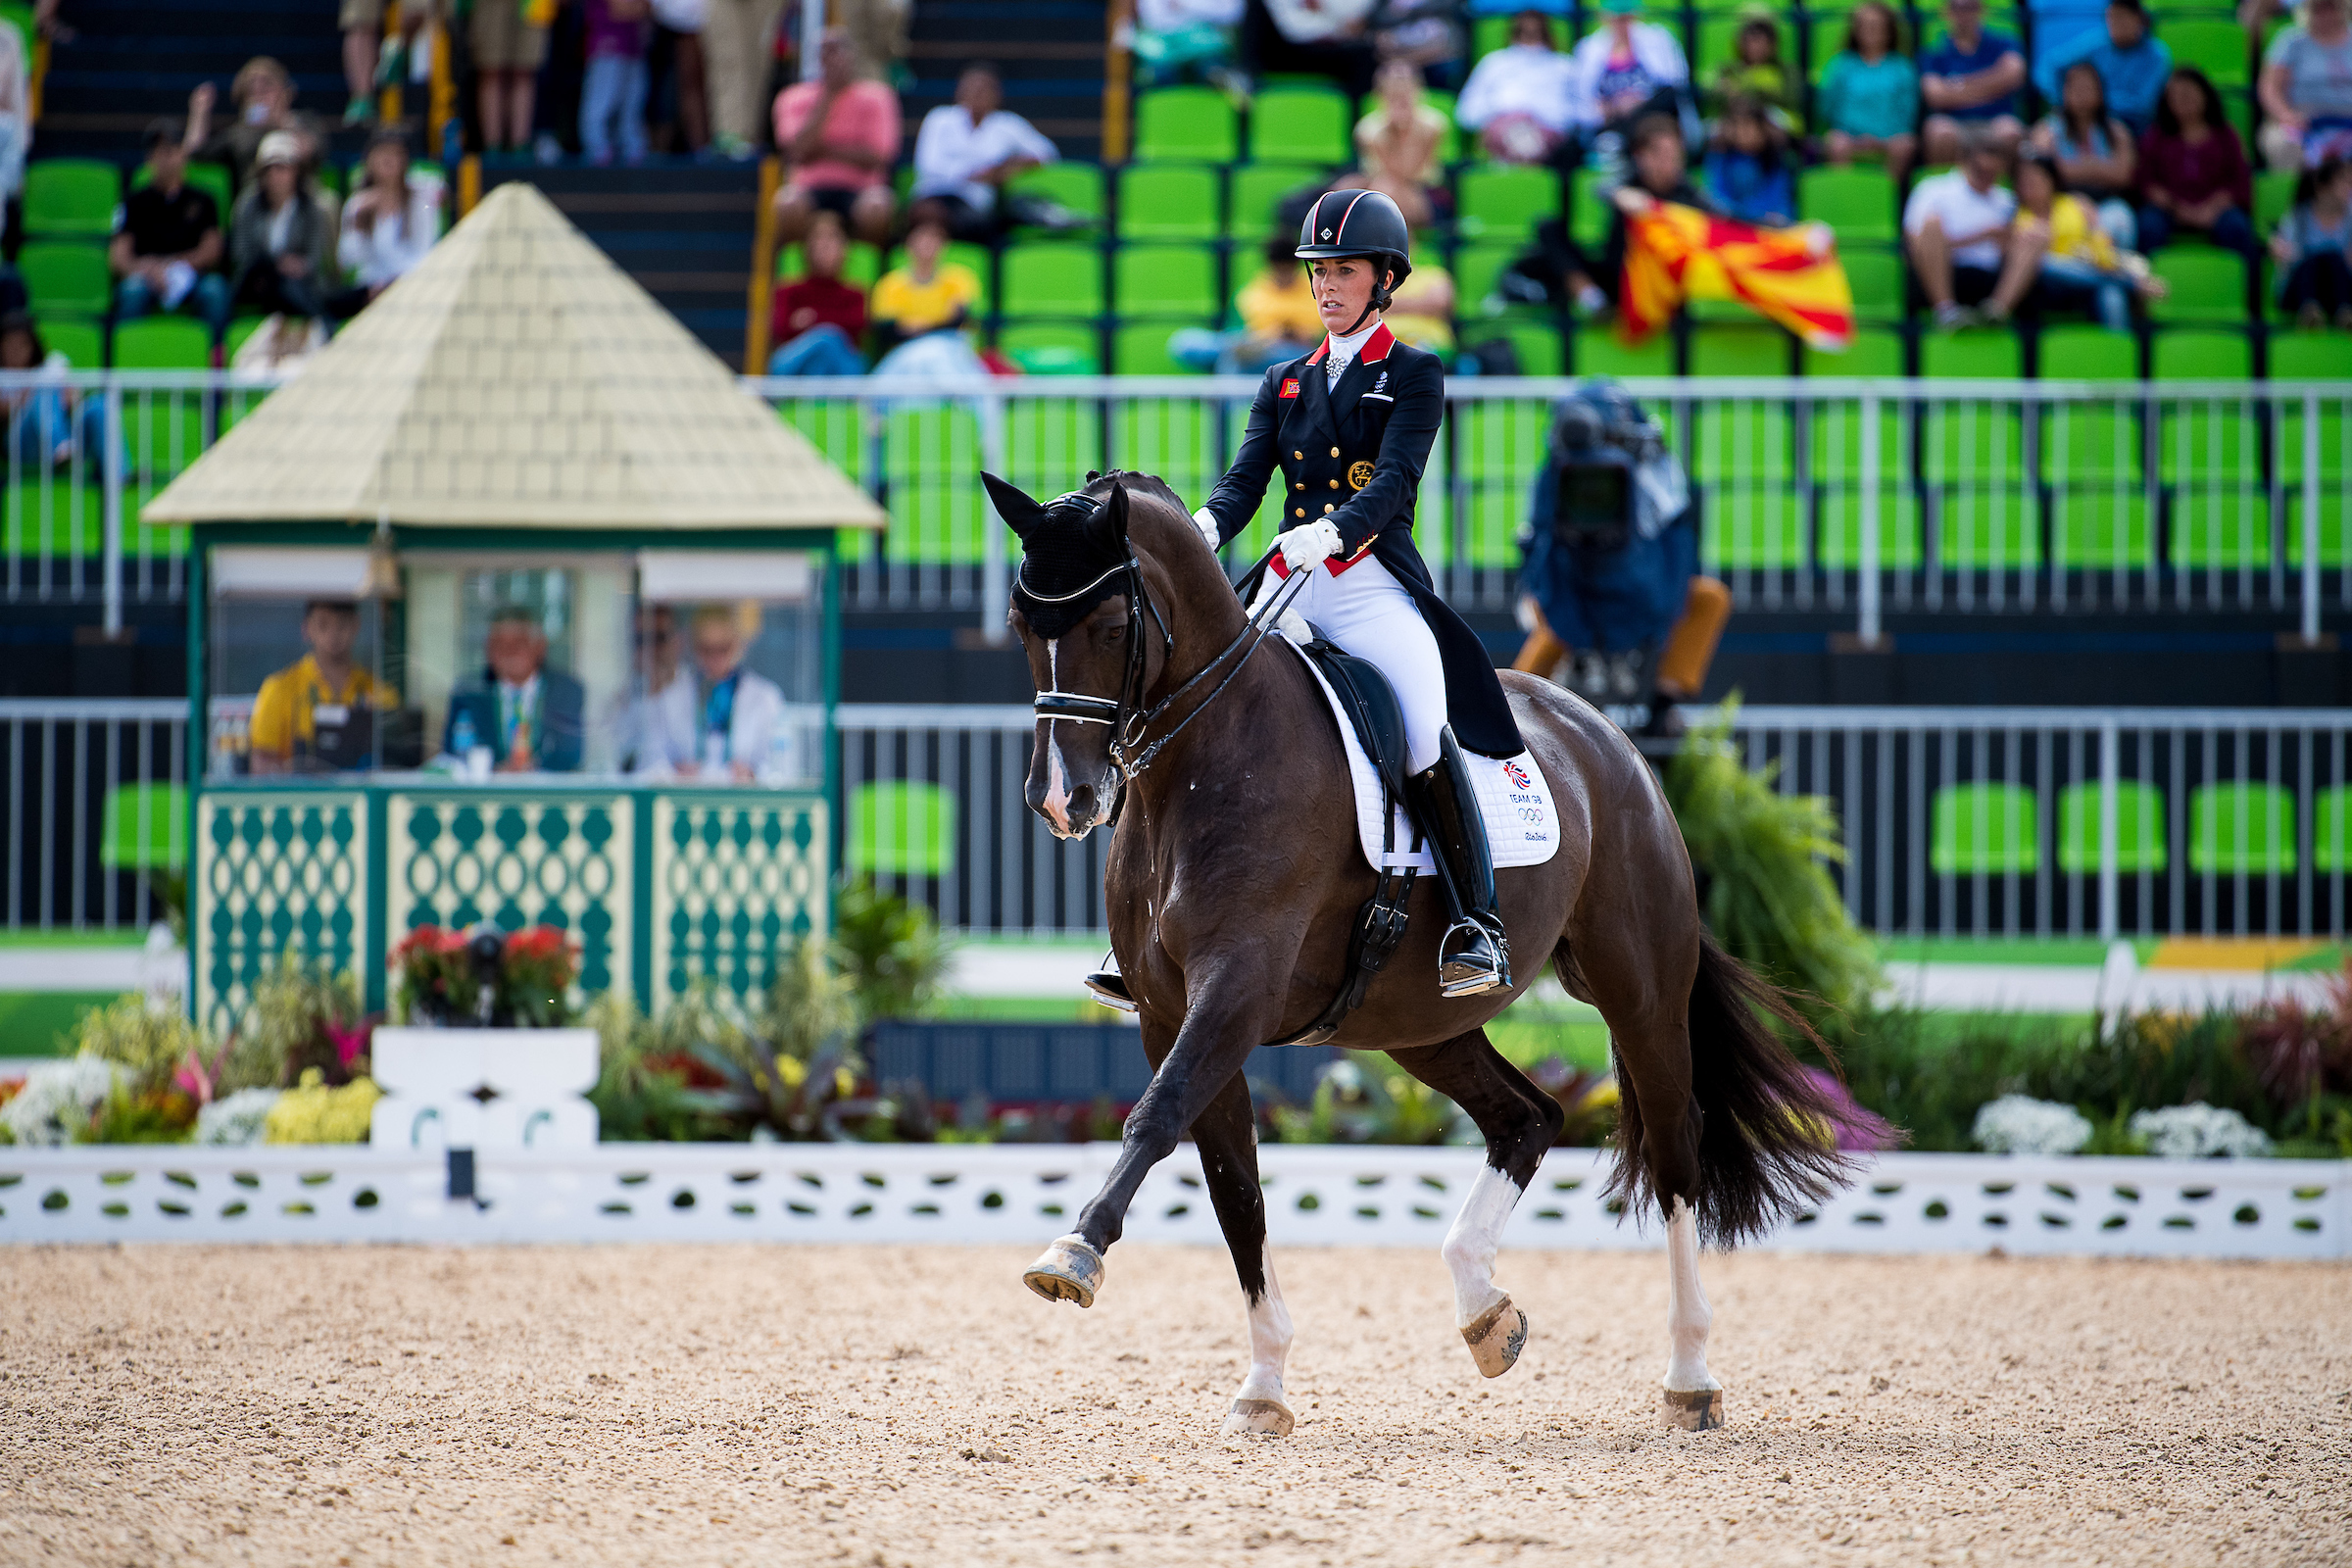 Charlotte Dujardin riding Valegro, leads the way into the final day (Credit: Jon Stroud Media/BEF)